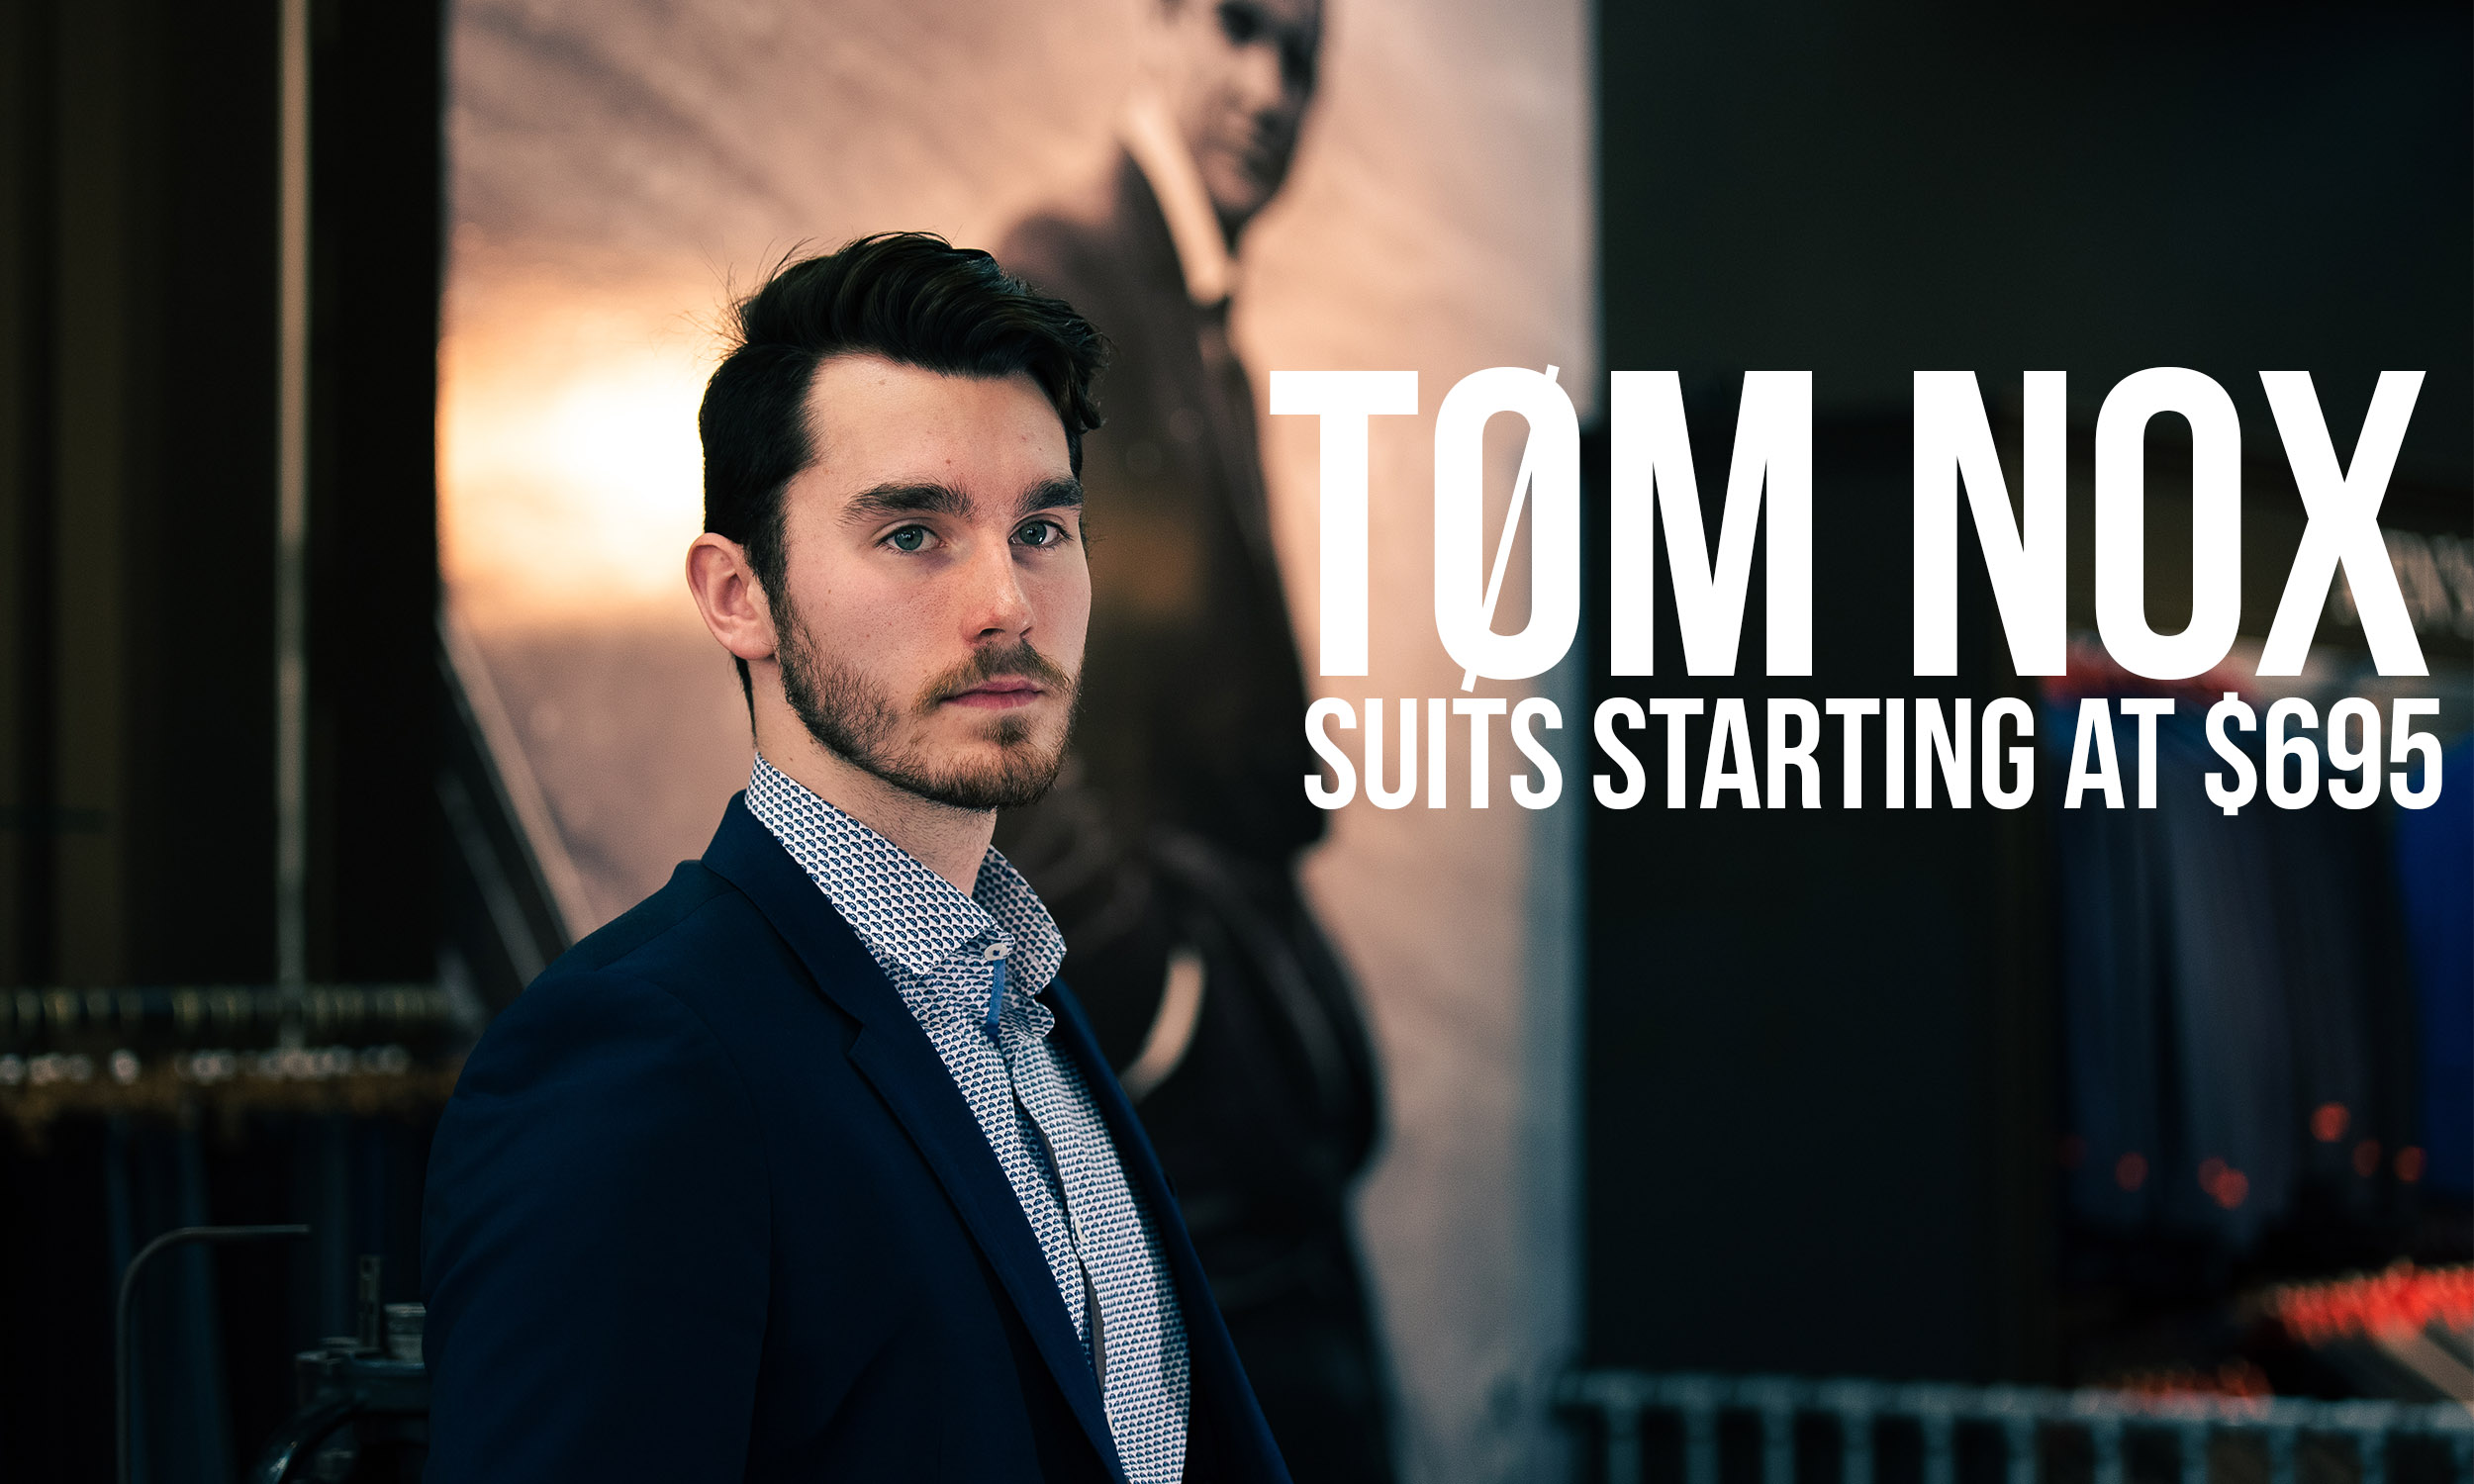 Tom Nox Suits.jpg